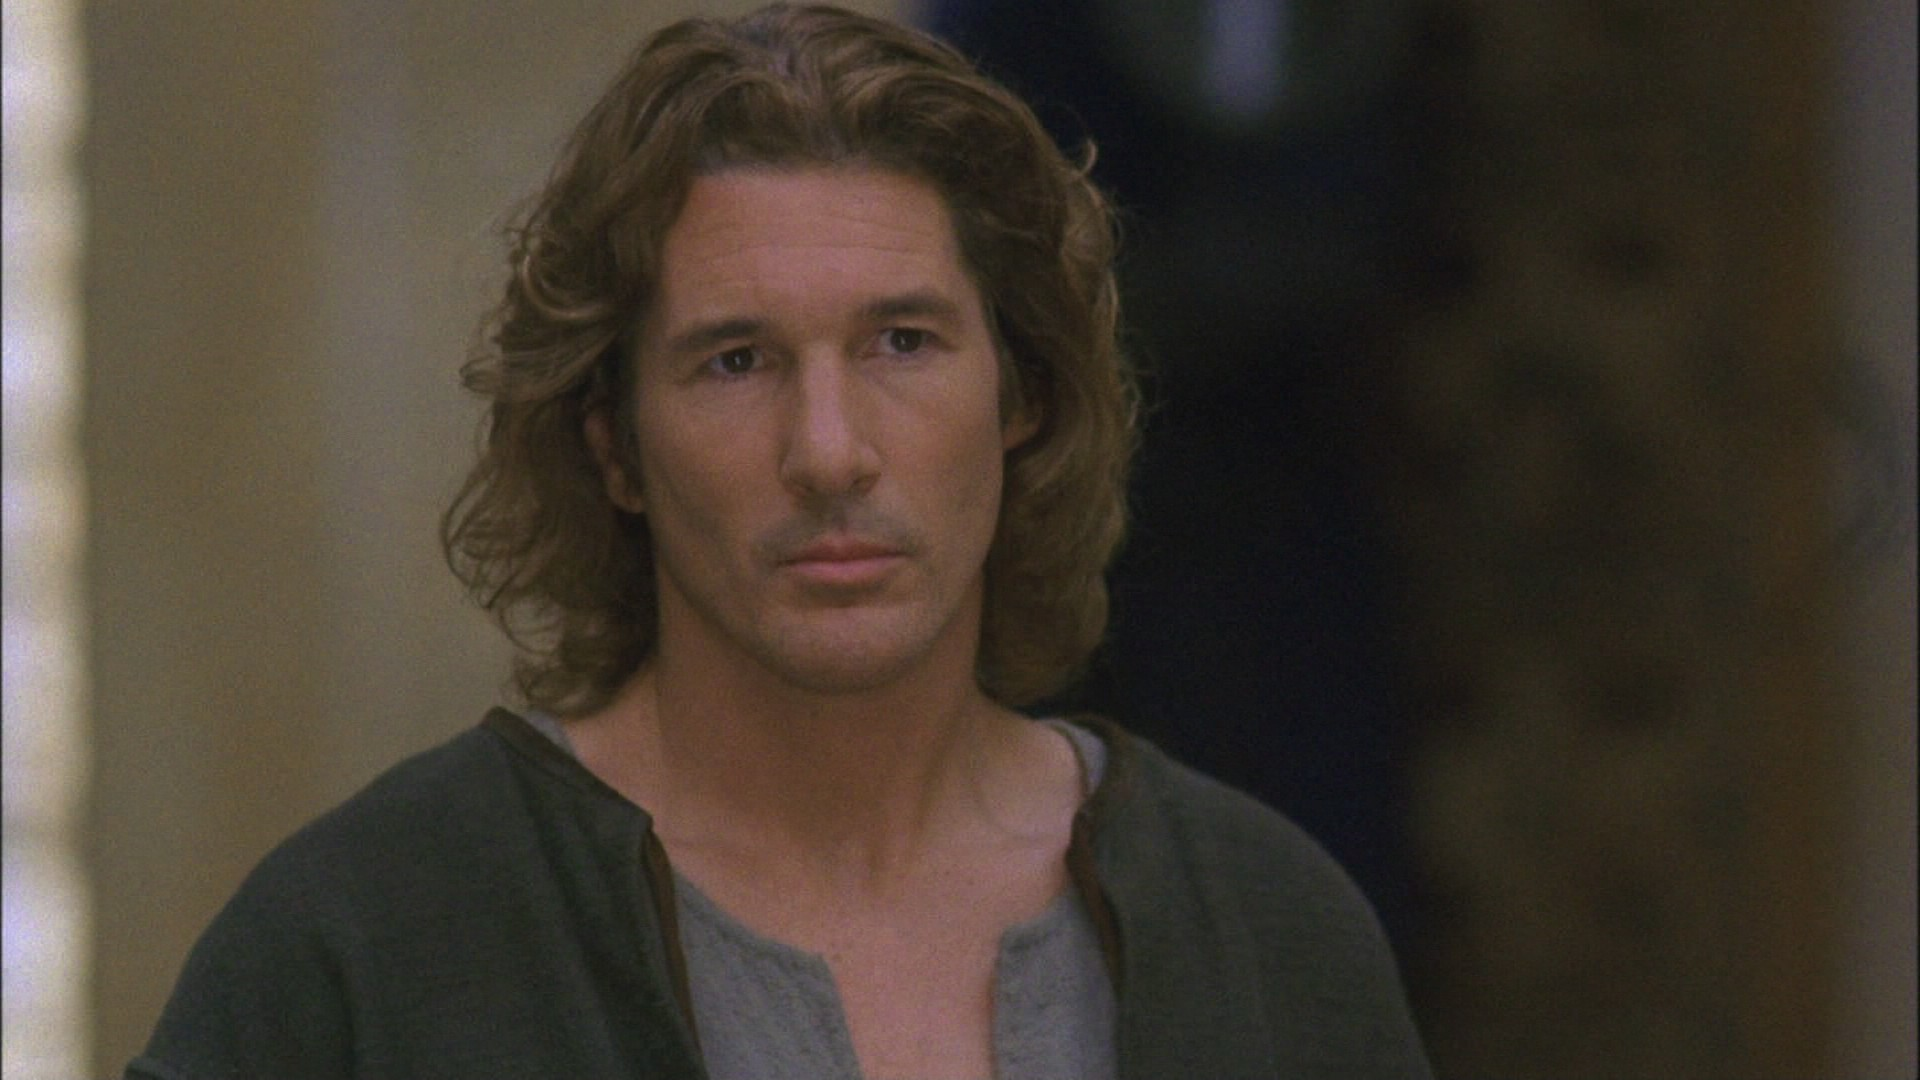 an action packed movie in the first knight by jerry zucker First knight (1995) is an interesting attempt to present a secular humanist vision of an ancient fable, but the filmmakers have sacrificed too much of the grit, pain, and moral compromise of the traditional story elements in the name of modernization.